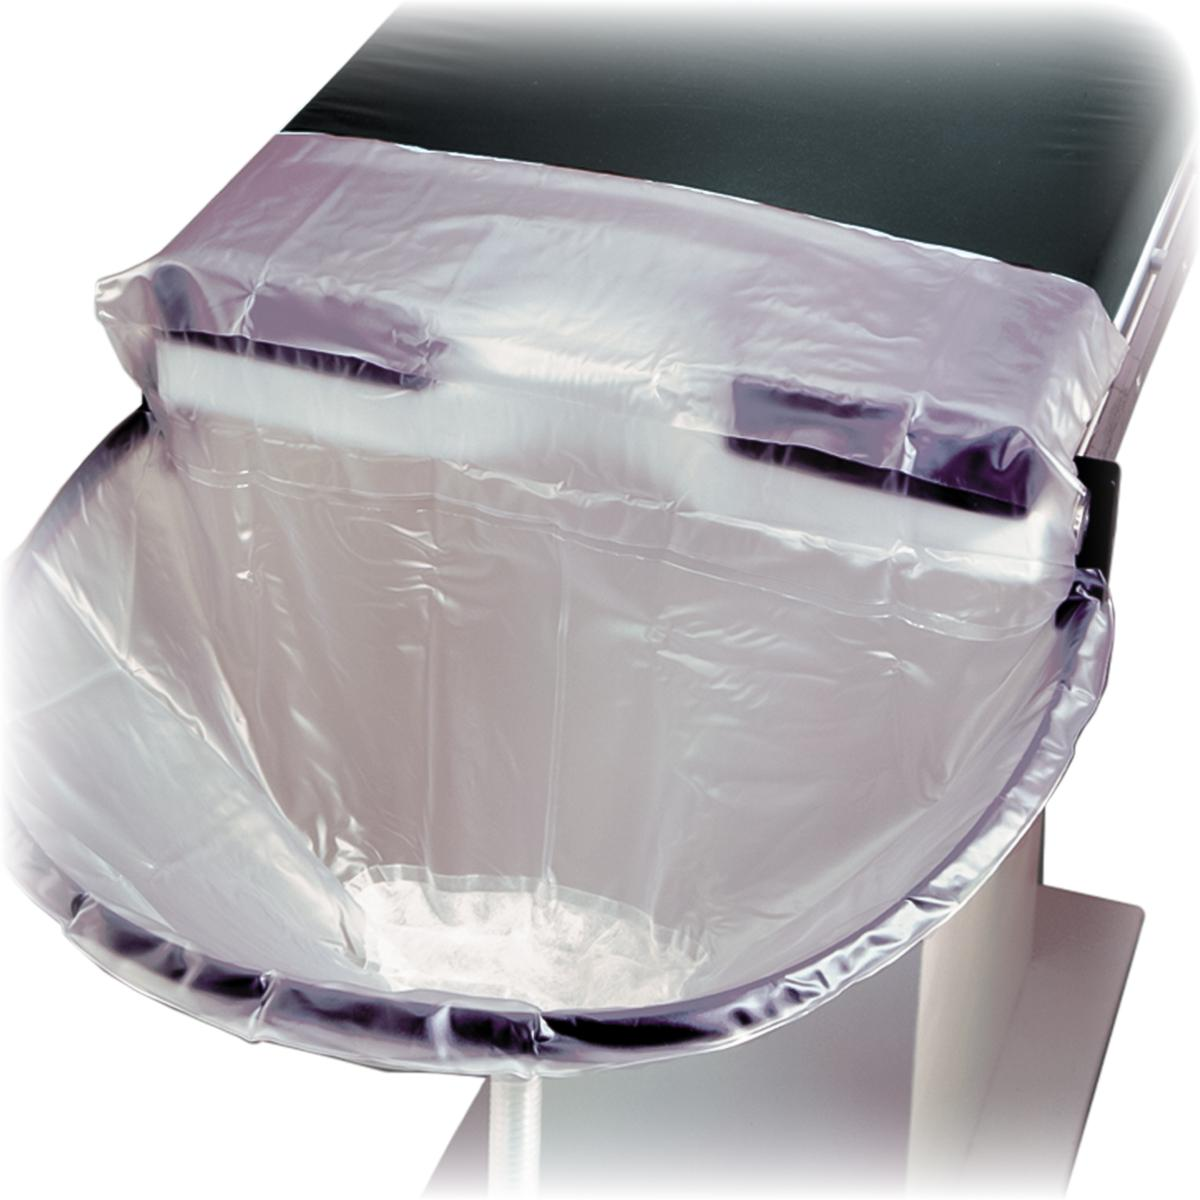 Uro Catcher System installed on OR table with bag